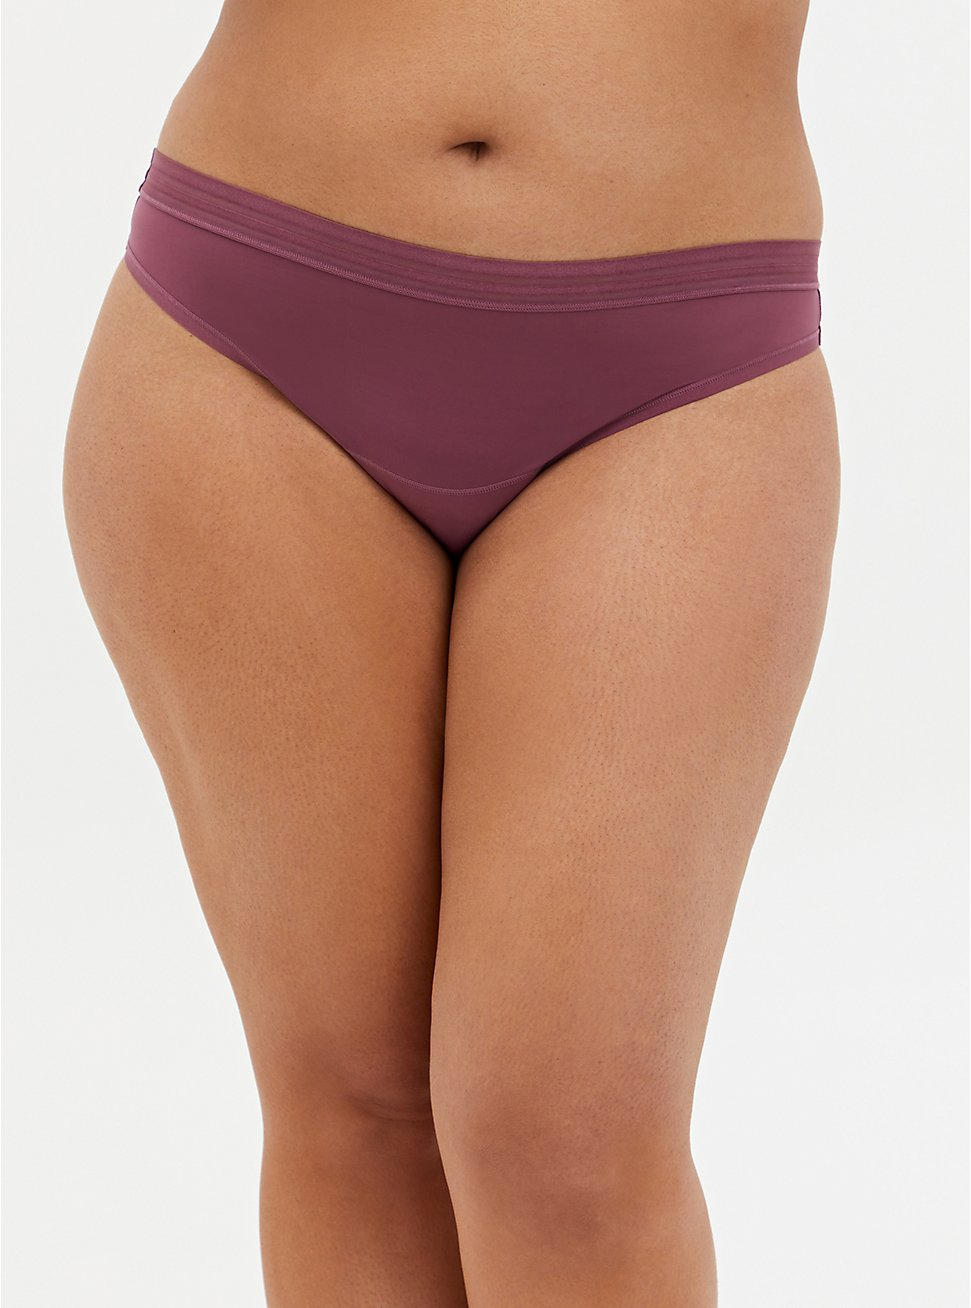 Plus Size Mauve Purple Second Skin Thong Panty, DRIED CRANBERRY BURGUNDY, hi-res